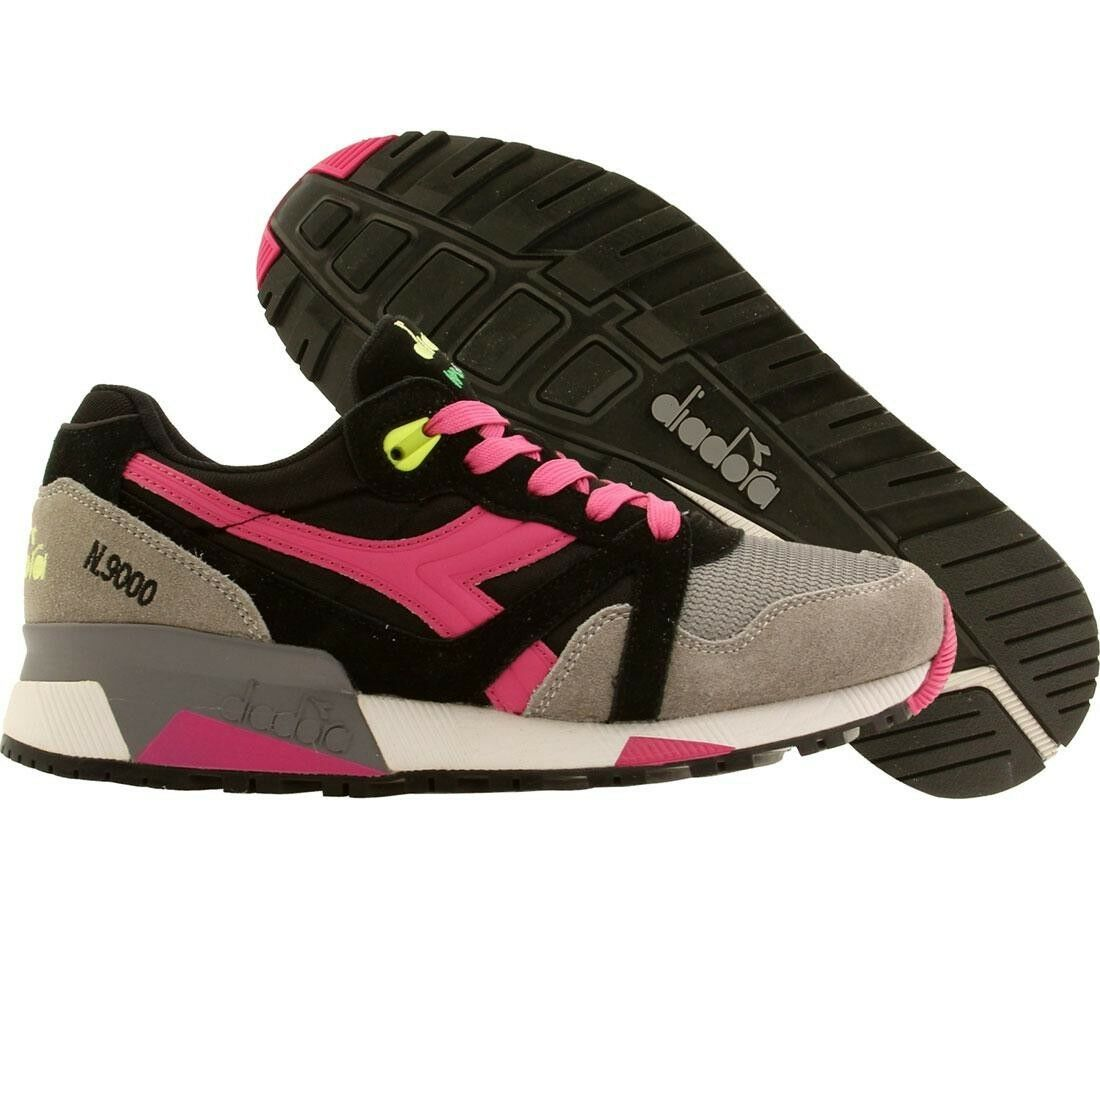 150 Diadora Women N9000 NYL black ice grey magenta 160827C5926